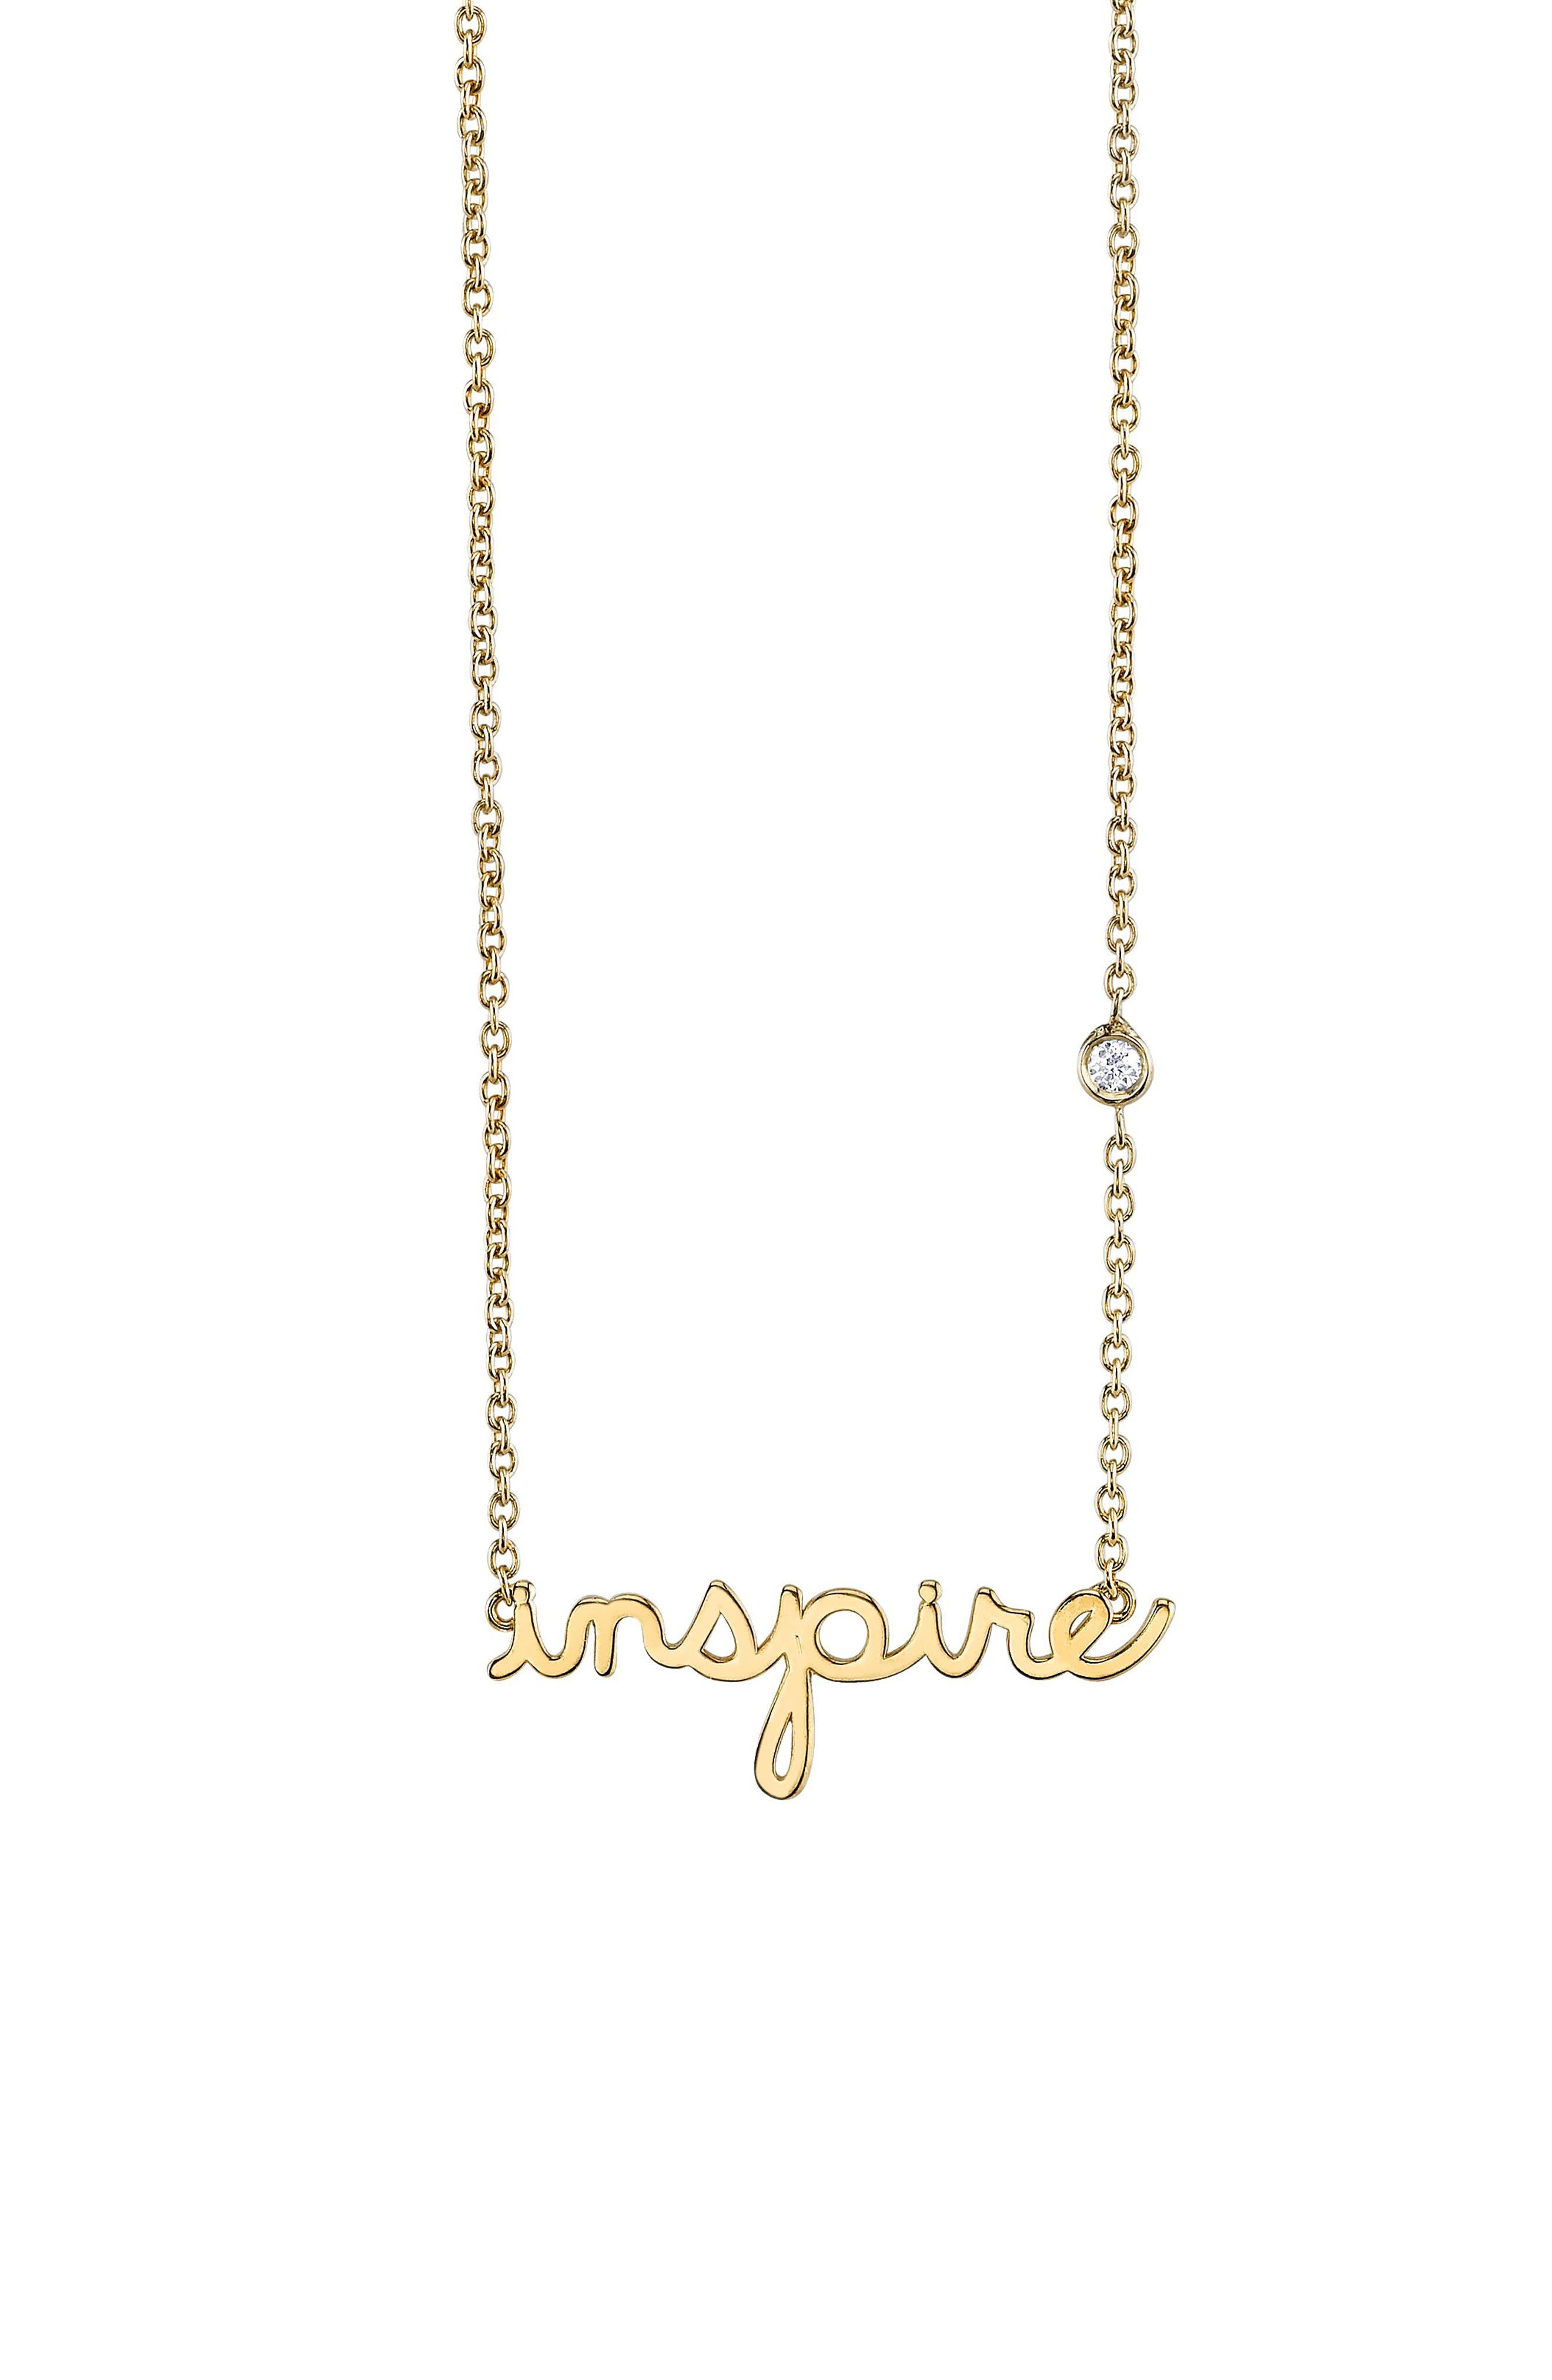 Inspire Necklace,                         Main,                         color, Gold